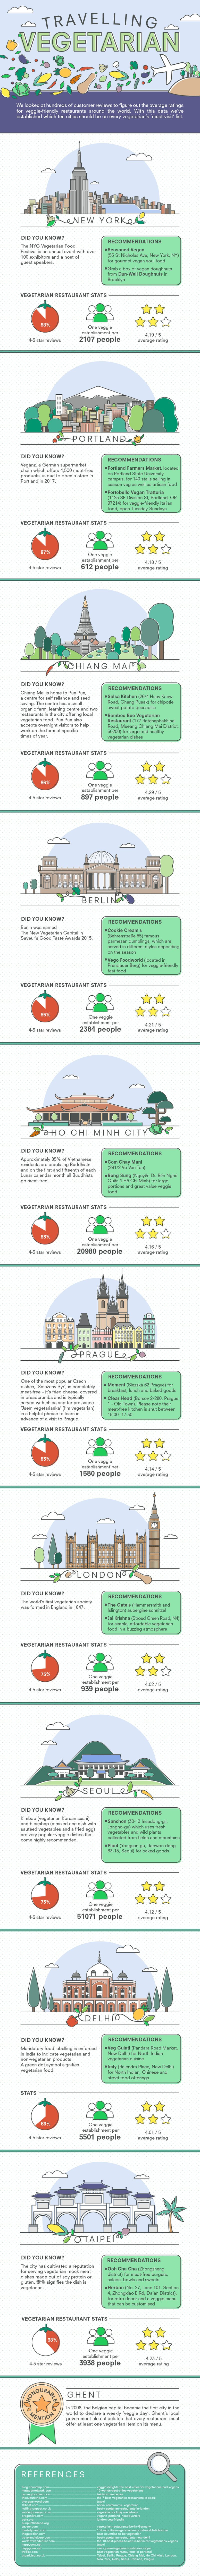 Travelling Vegetarian #infographic